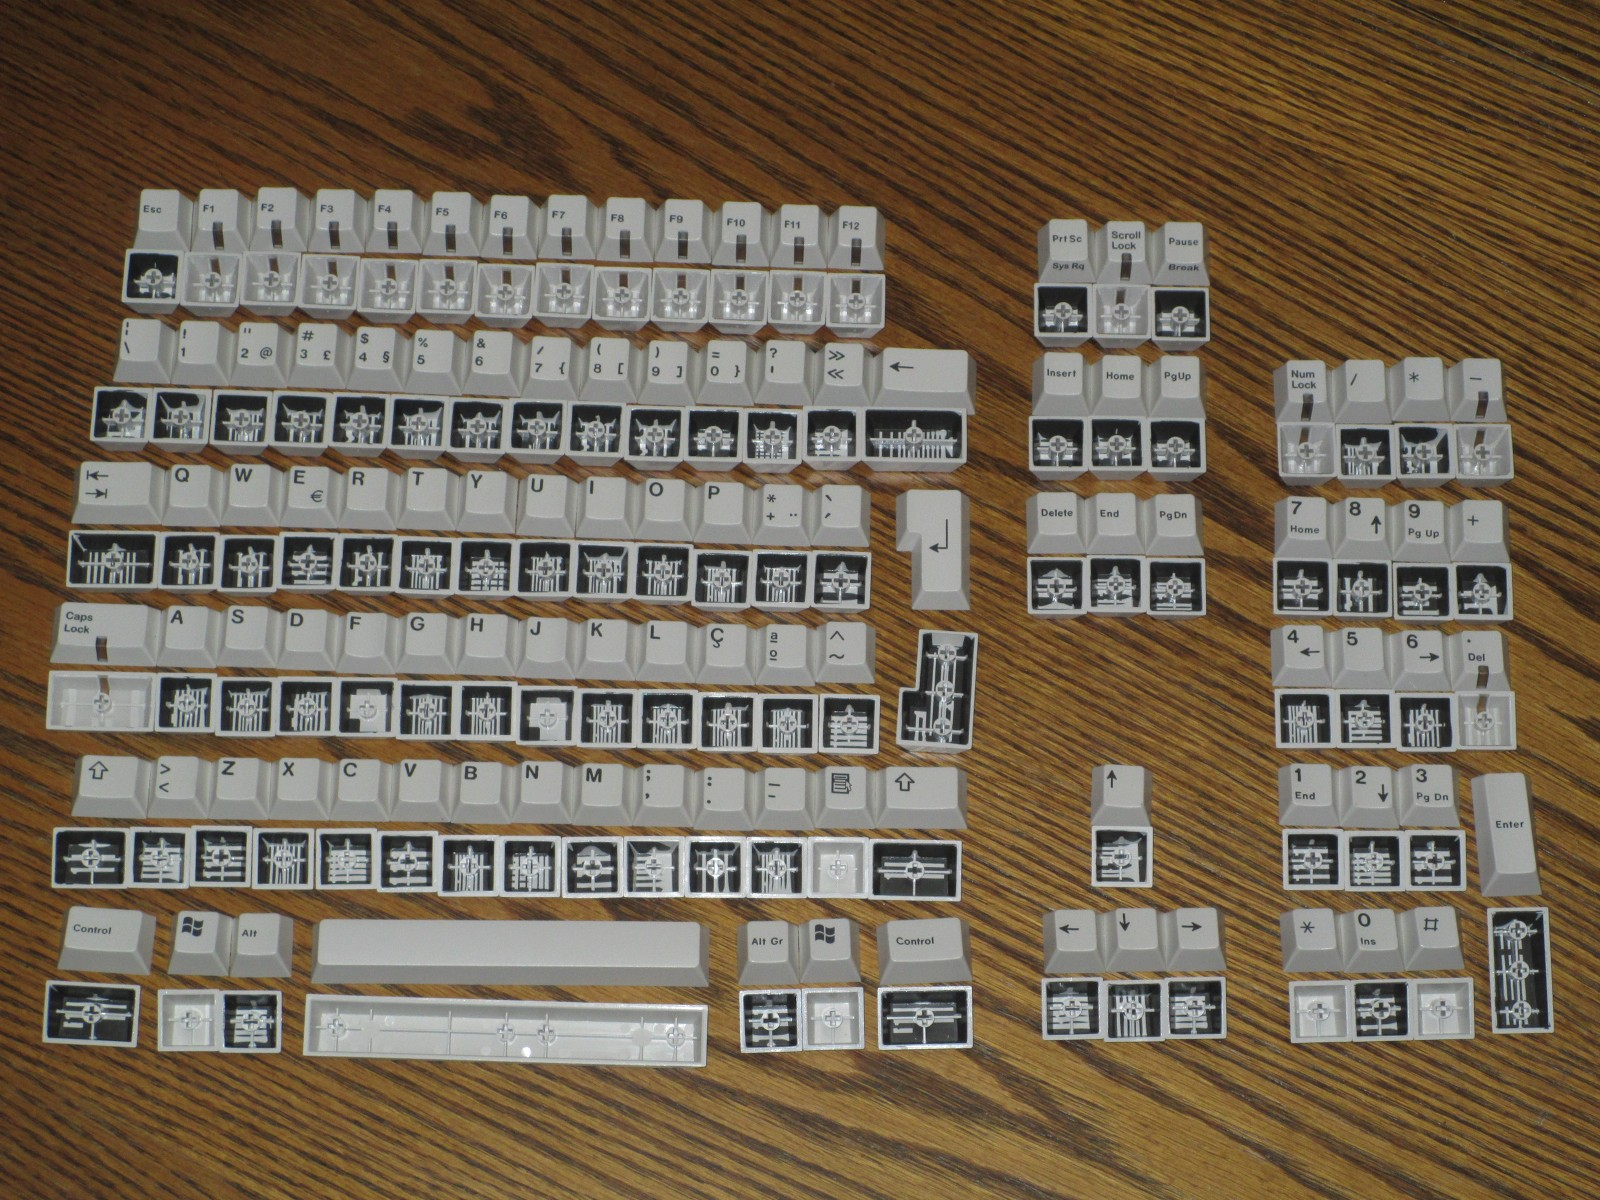 Alcatel MMK keycap sets (Portuguese layout).